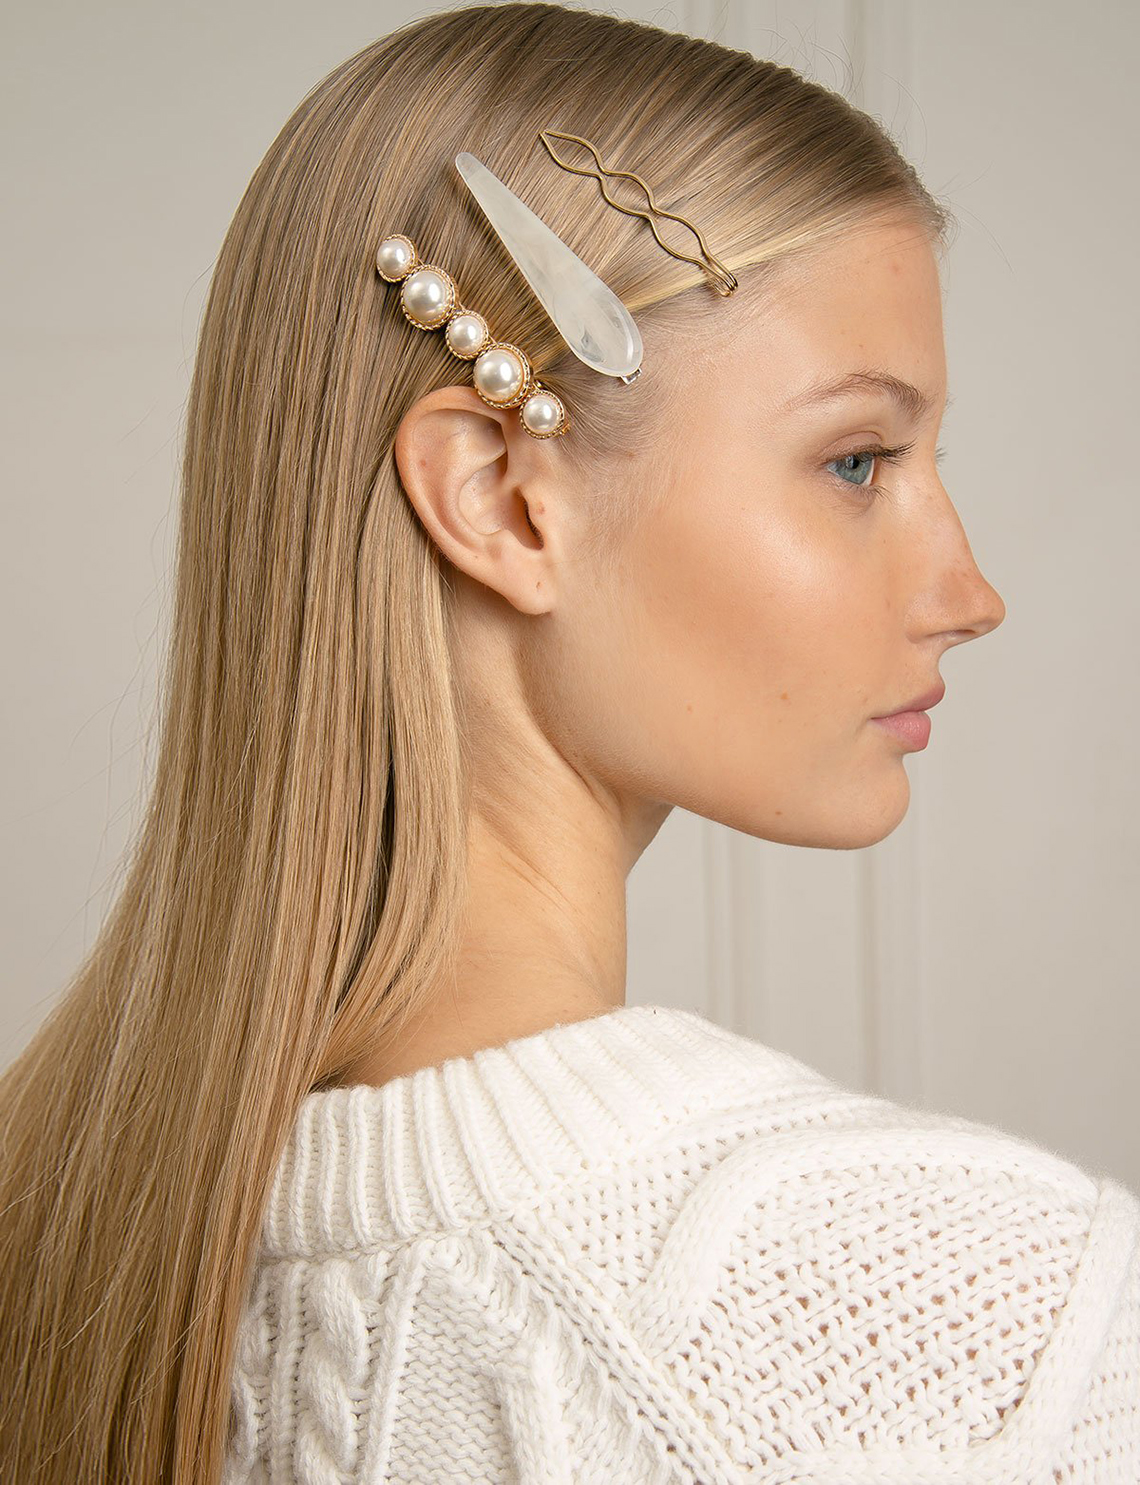 herstylecode 1 How to Wear Barrettes, 10 Easy Ways to Style Barrettes